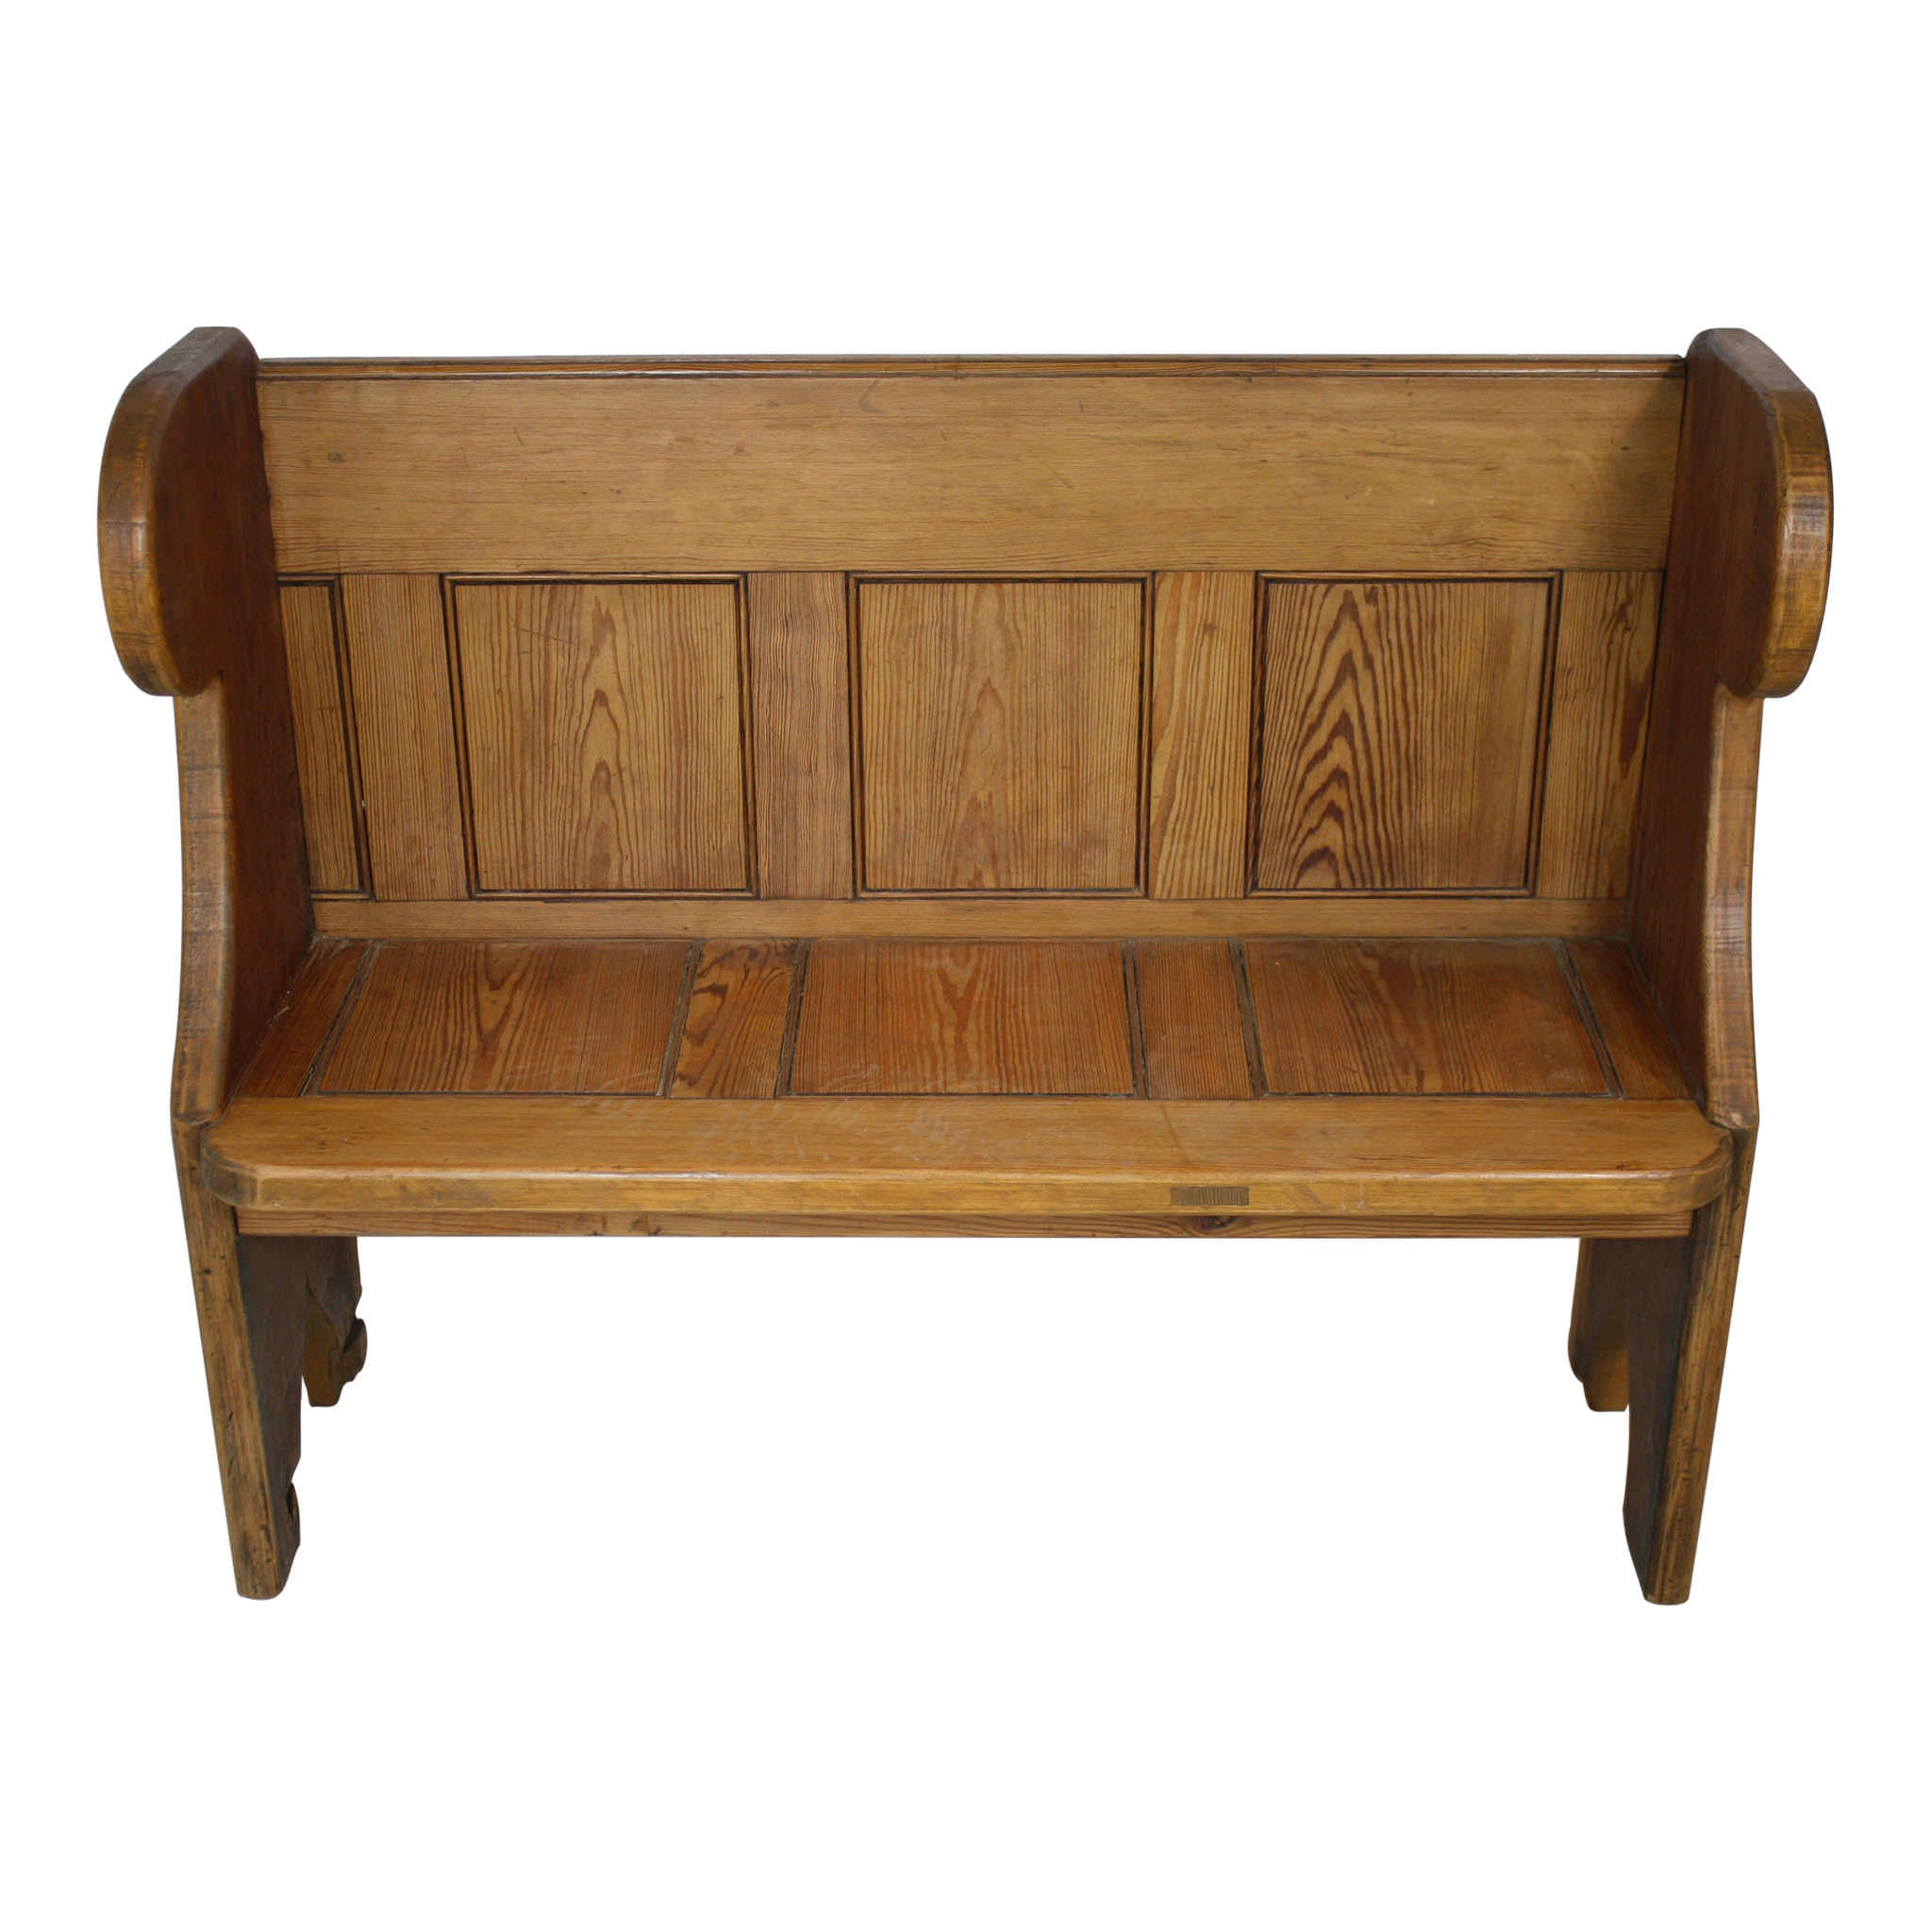 English Pine Church Pew